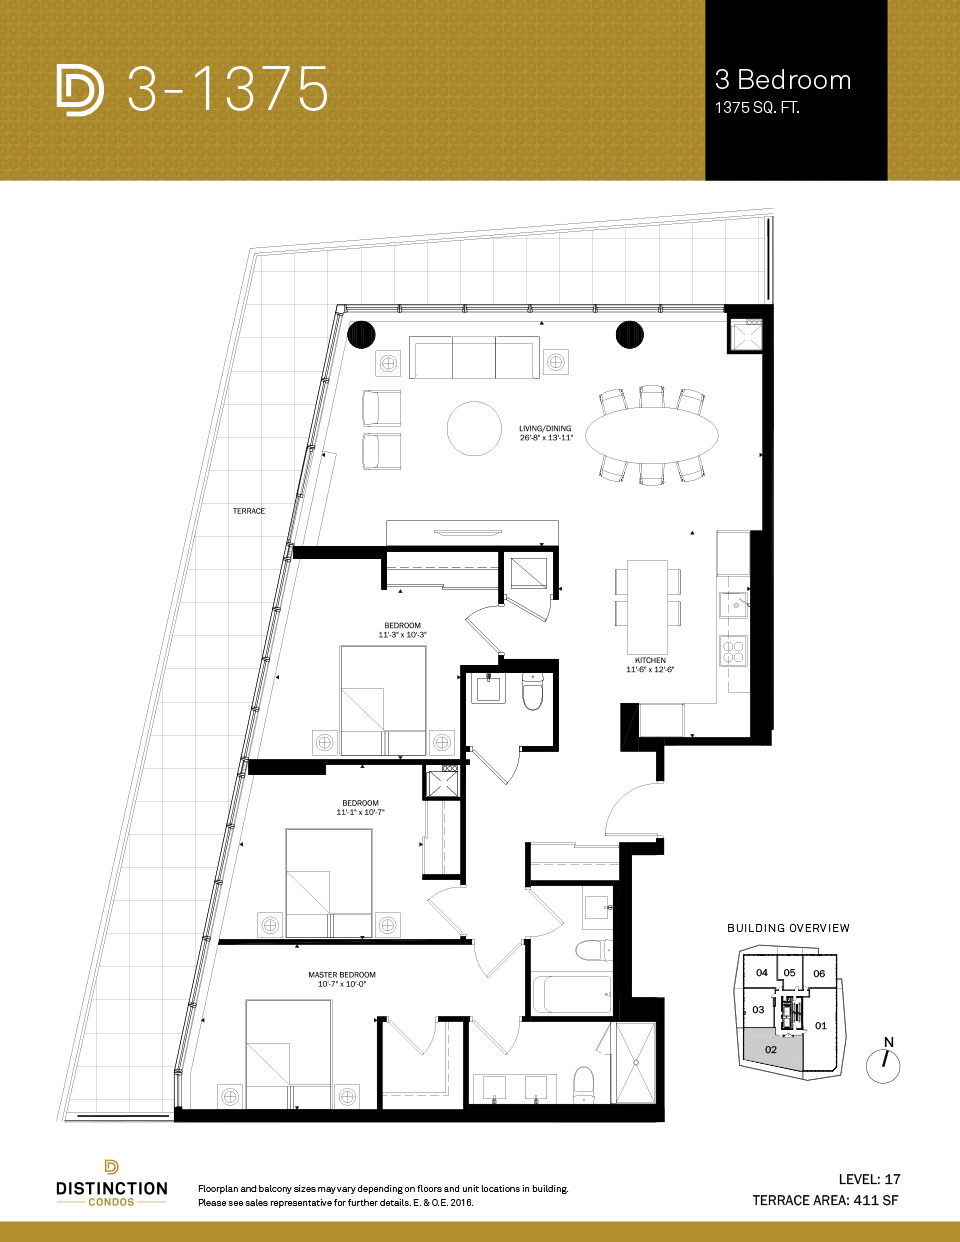 distinction condos floorplan 3-1375